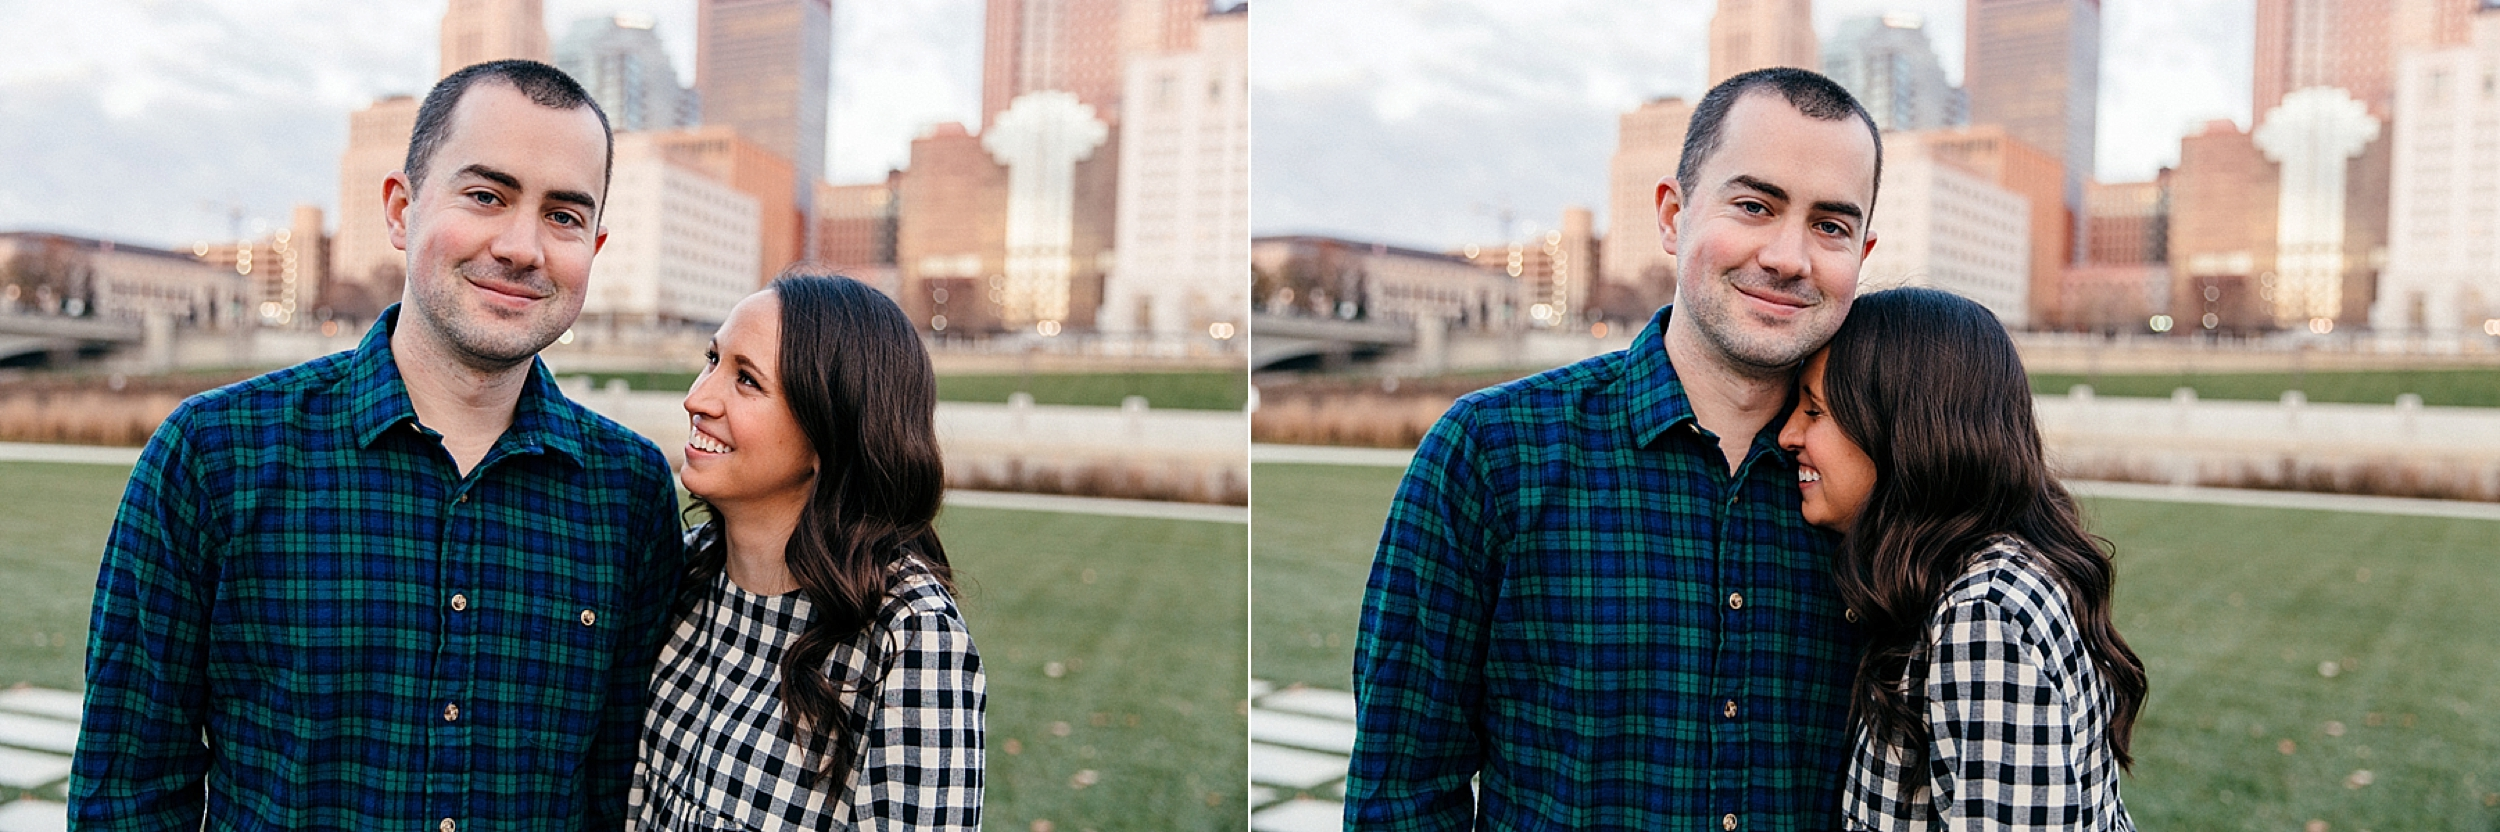 midwest-michigan-indiana-engagement-and-wedding-photographer-session-in-columbus-ohio_0010.jpg